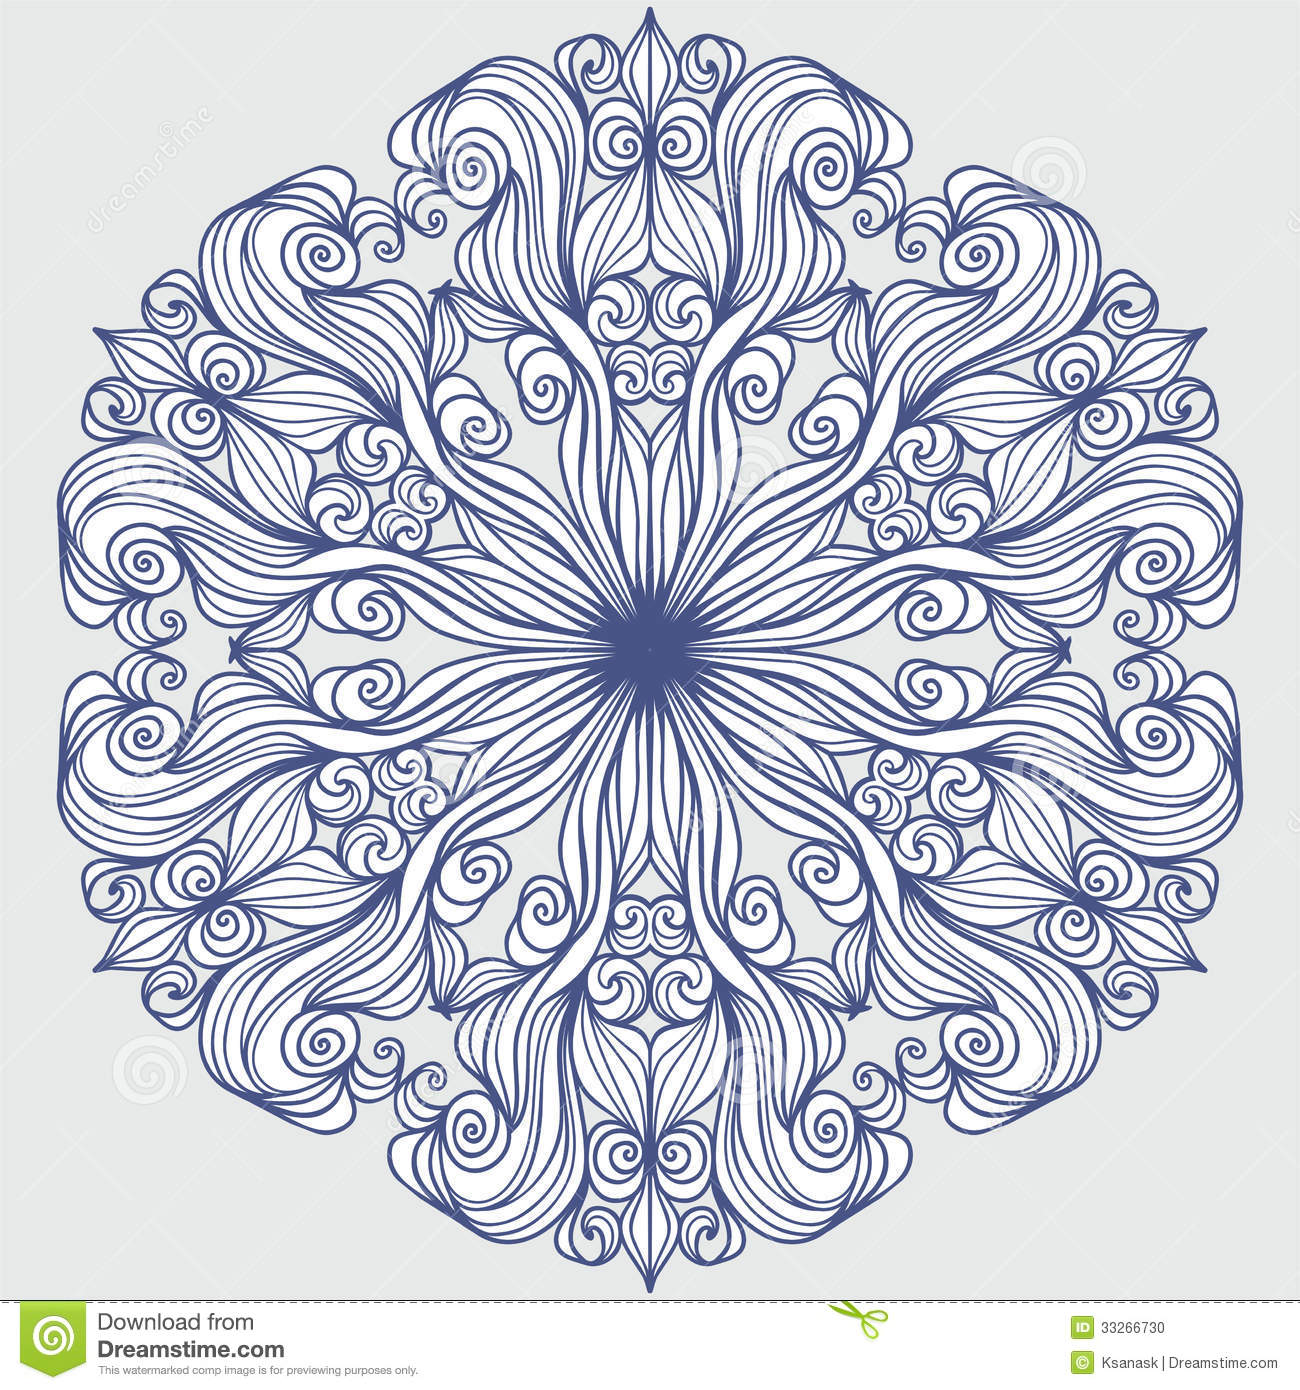 design color it by your own taste vector file is eps8 all elements